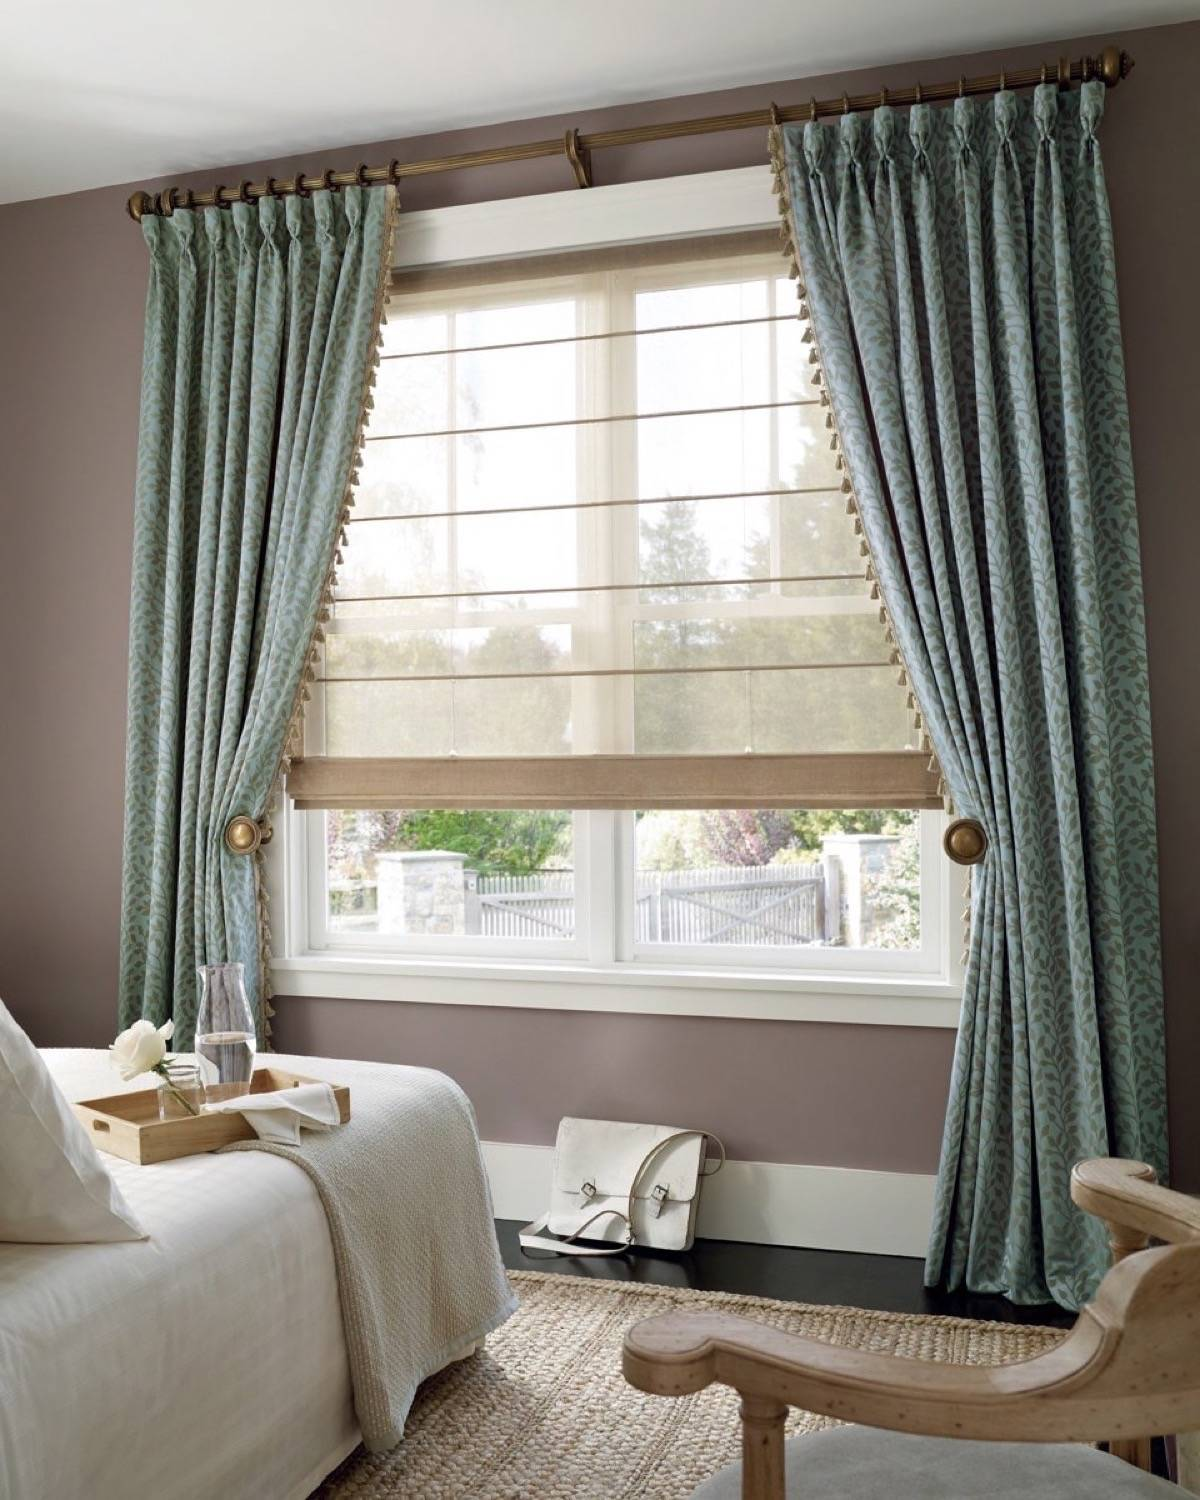 in rooms window drapery designerroller blinds room shades plum treatments advance media and for by coulee blockout darkening